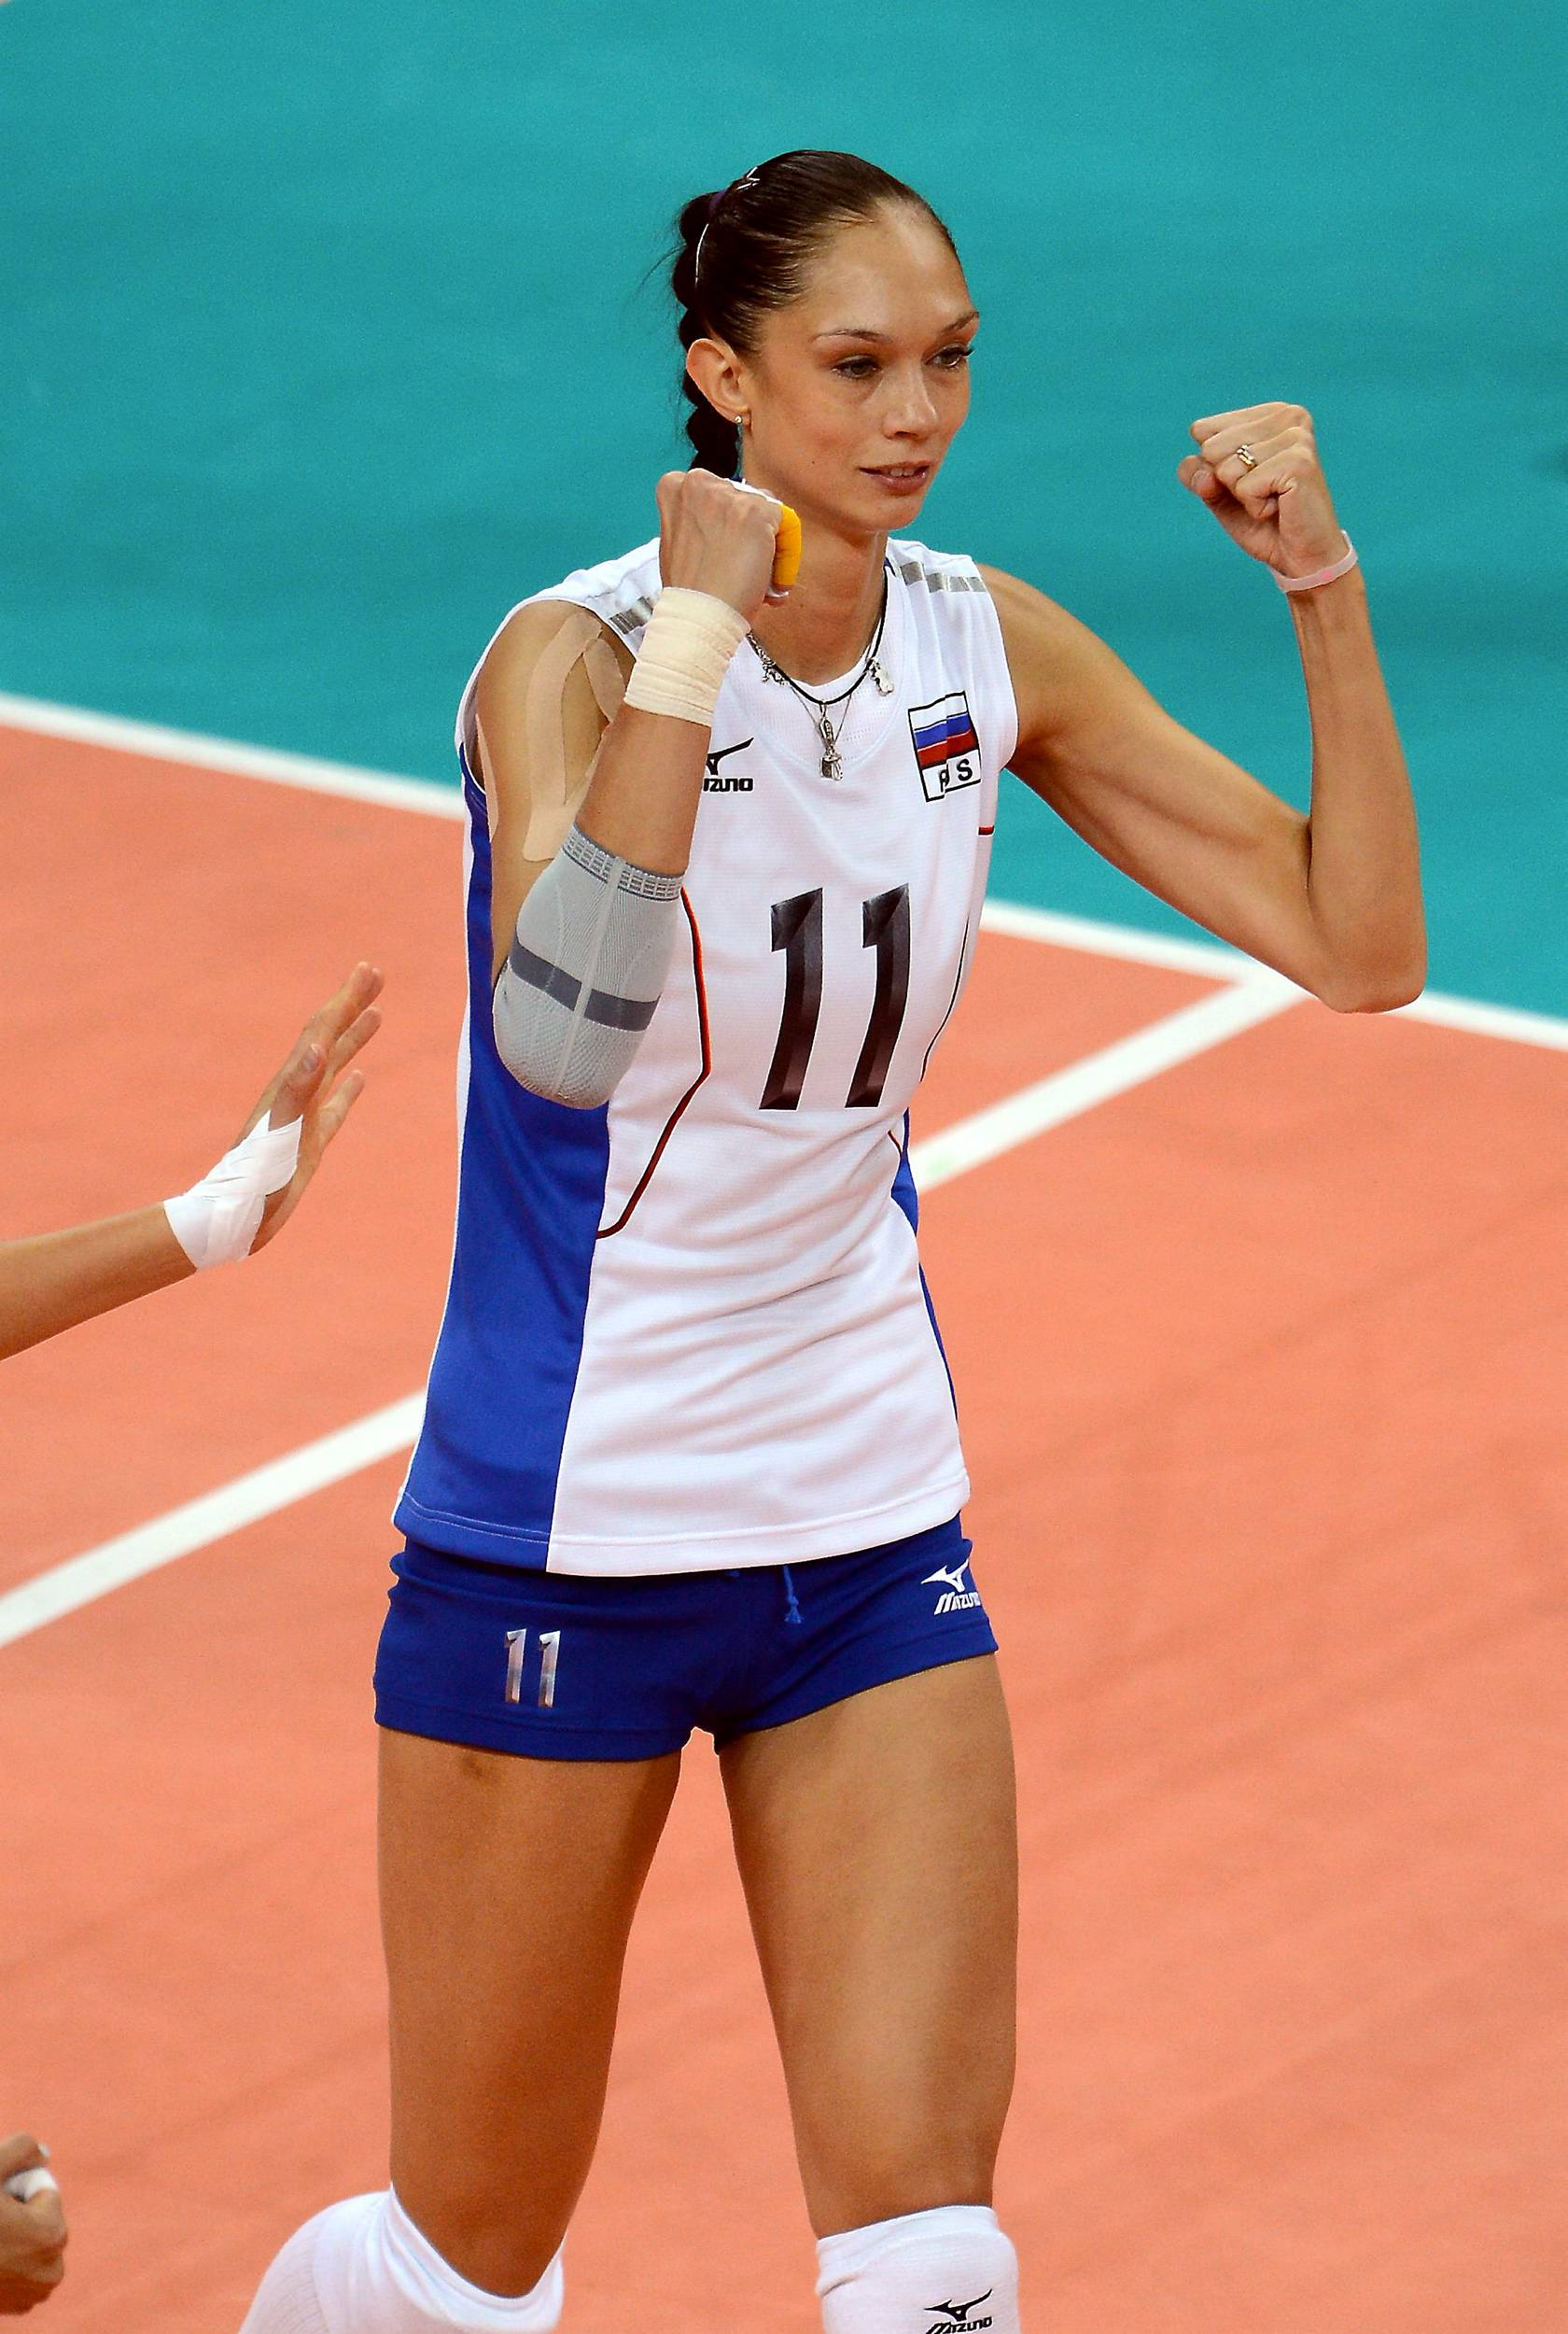 ekaterina gamova russia best volleyball player The Return Of Ekaterina Gamova